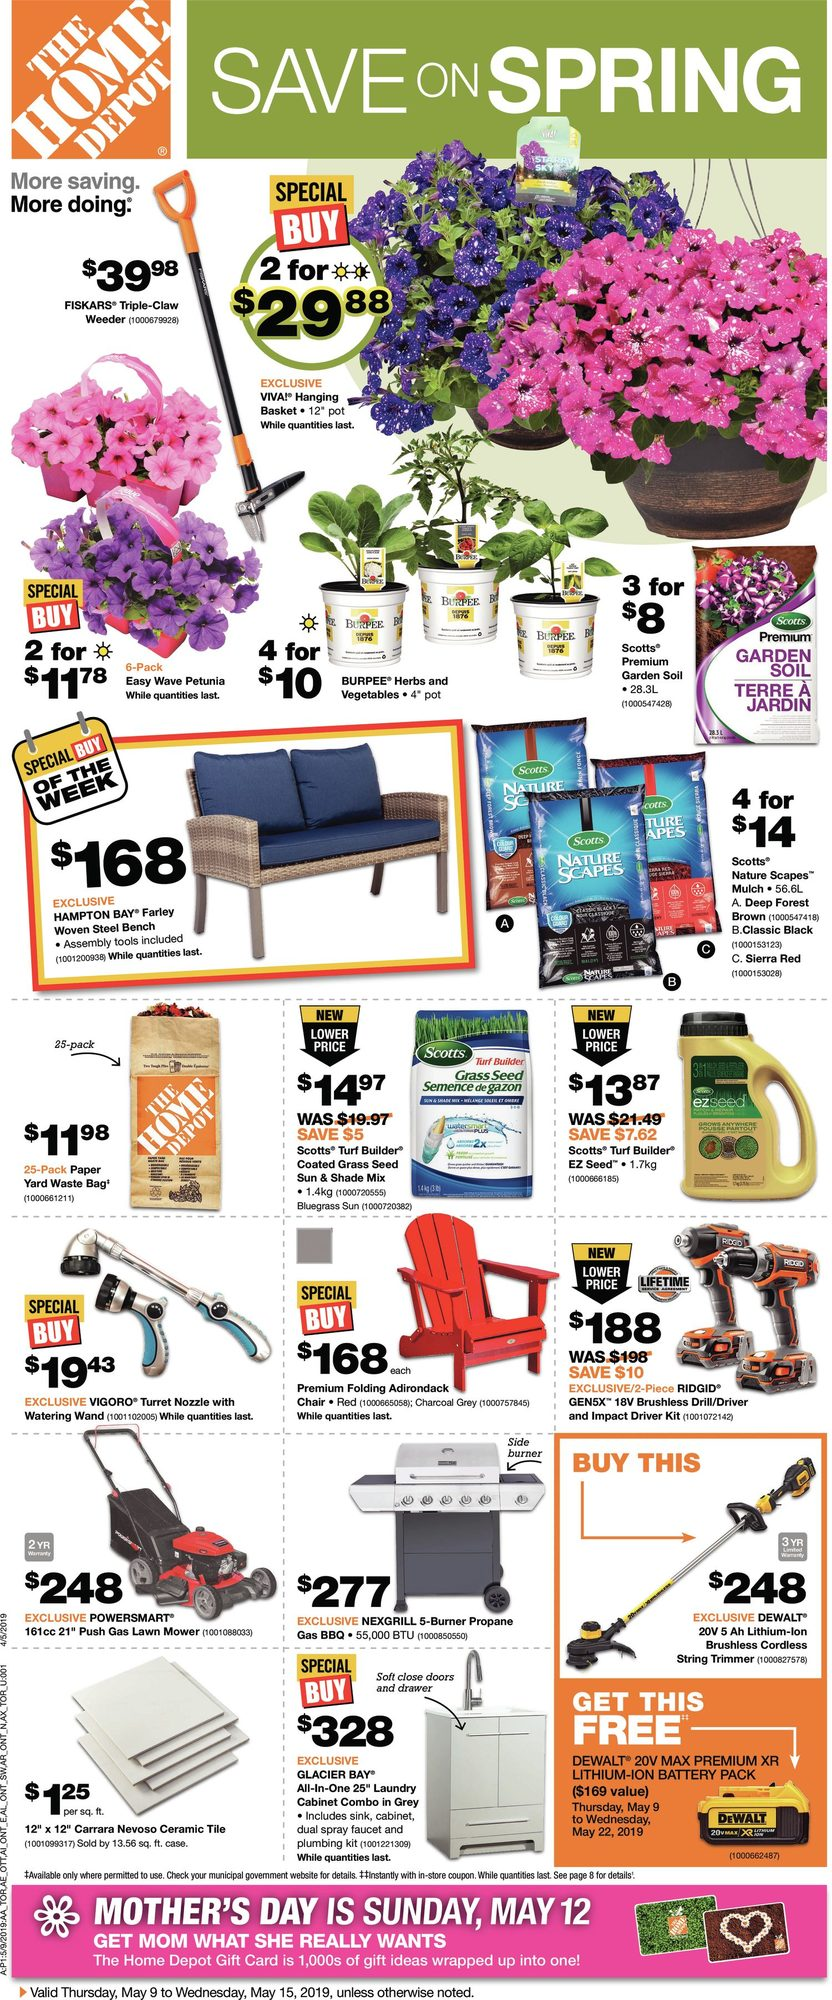 Weekly - Save On Spring - Home Depot May 9 2019 | YP Shopwise